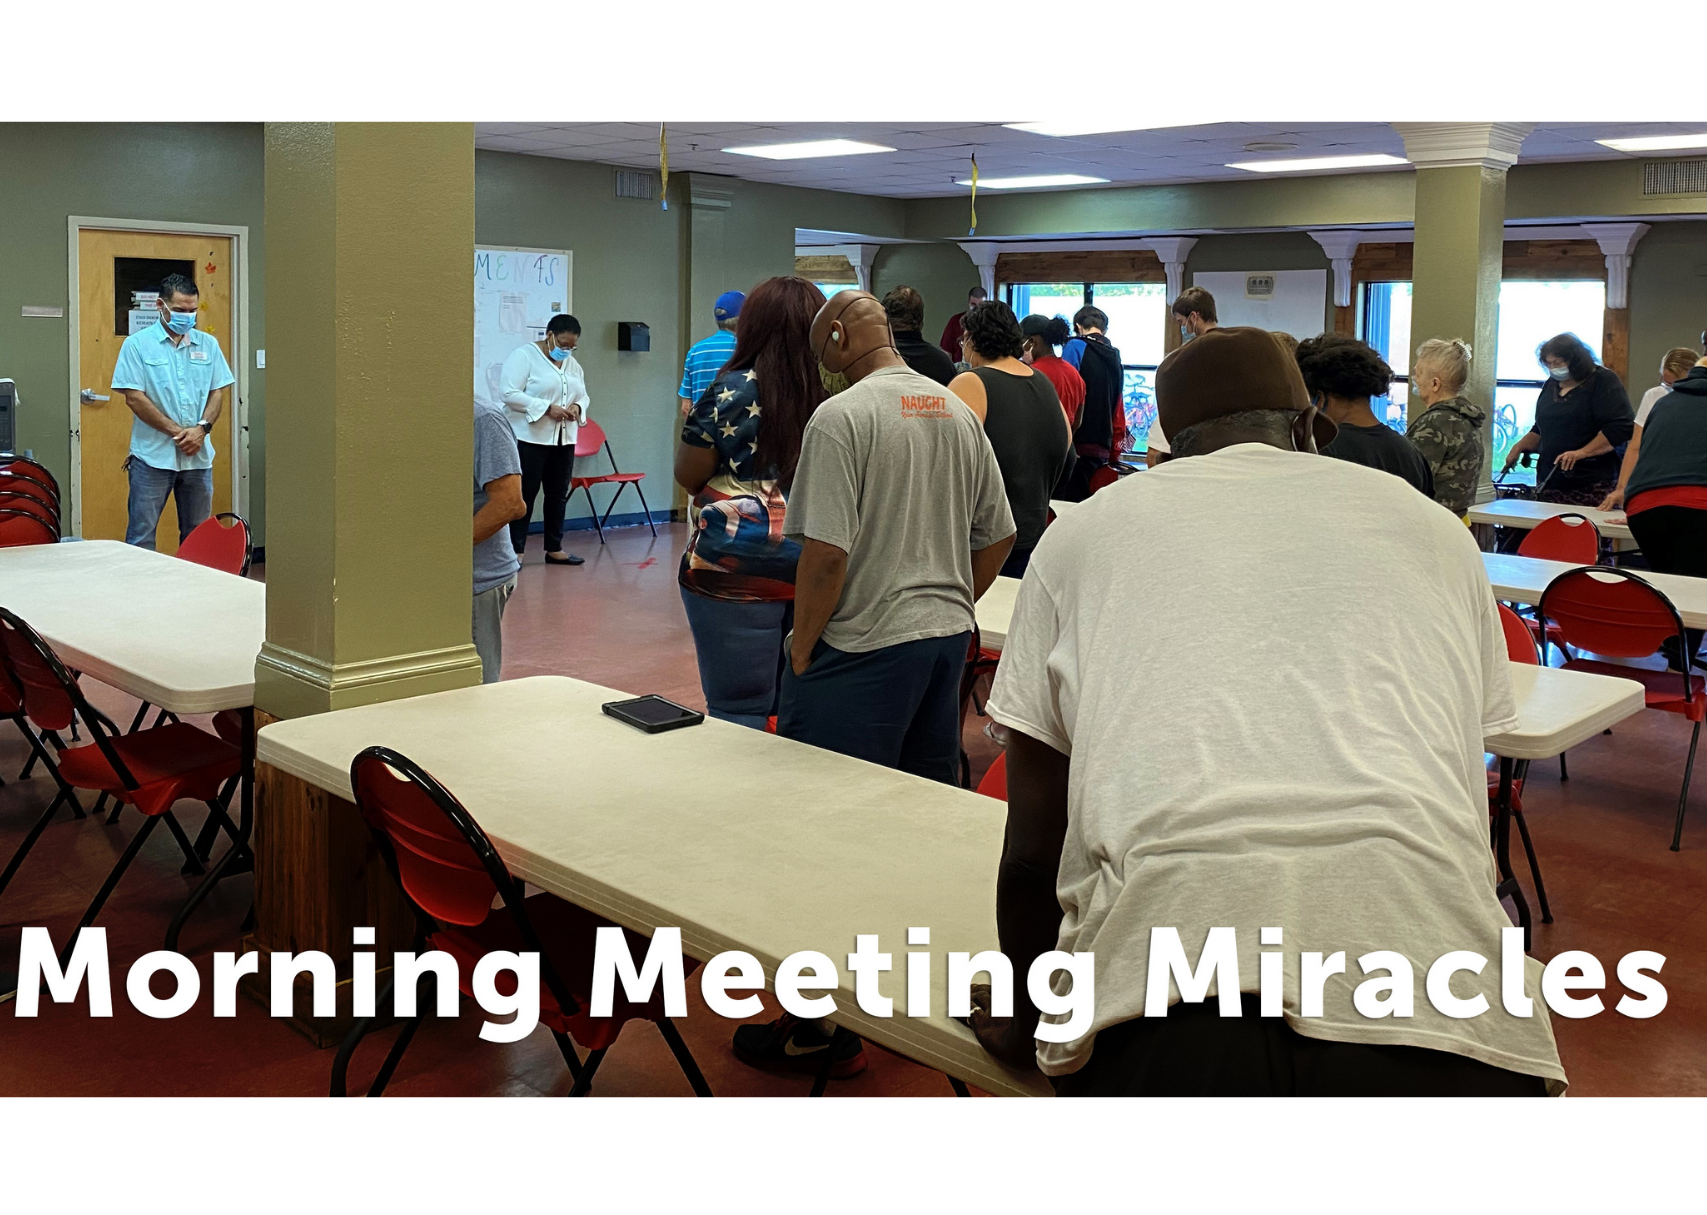 Morning Meeting Miracles